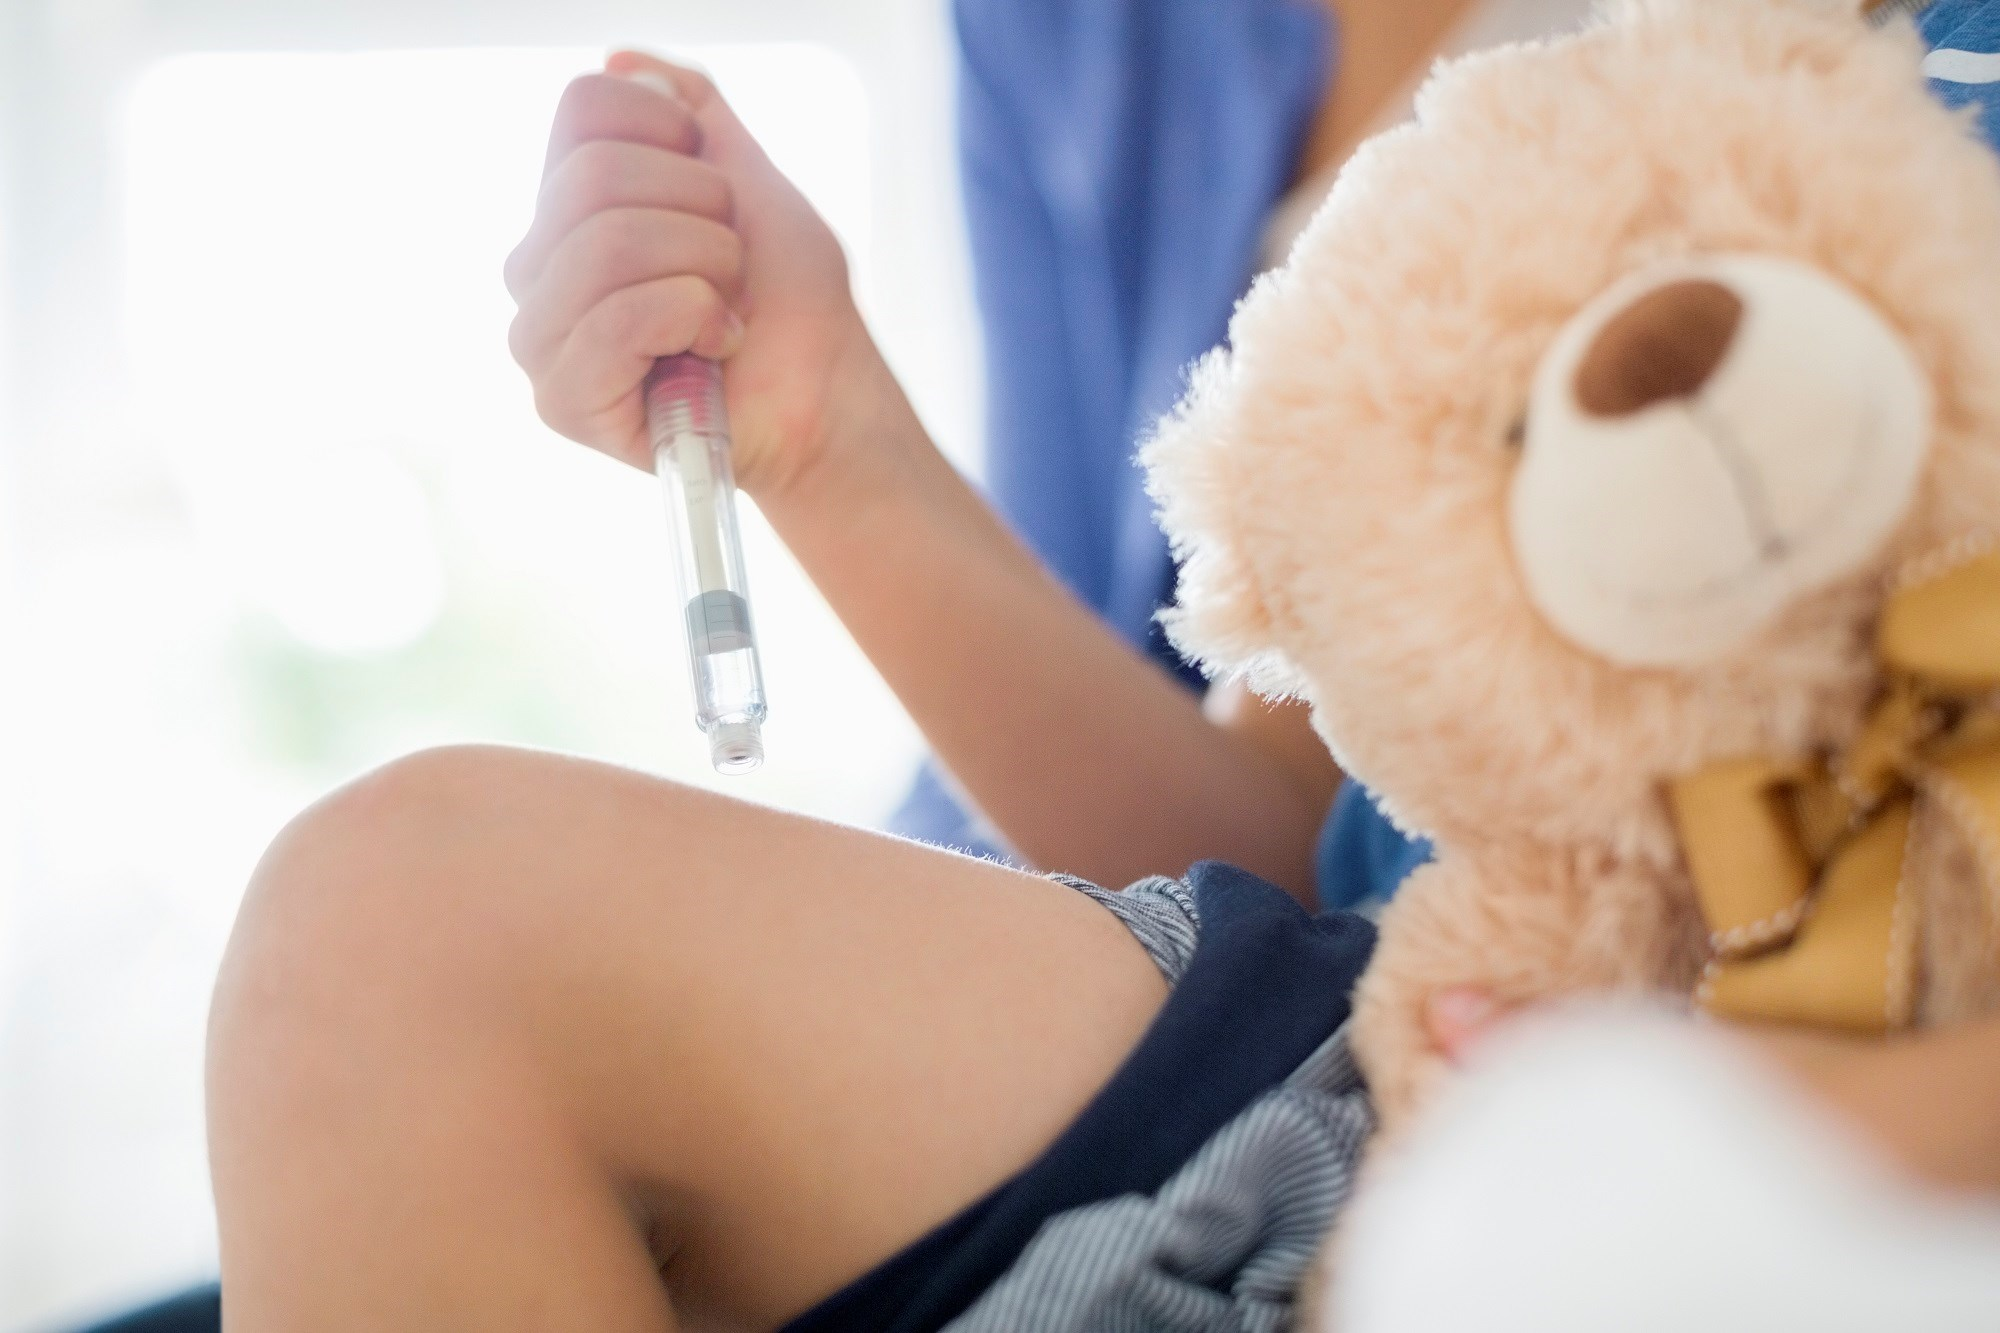 Children at increased risk for type 1 diabetes and who were enrolled in longitudinal follow-up before being diagnosed with diabetes have better metabolic control.